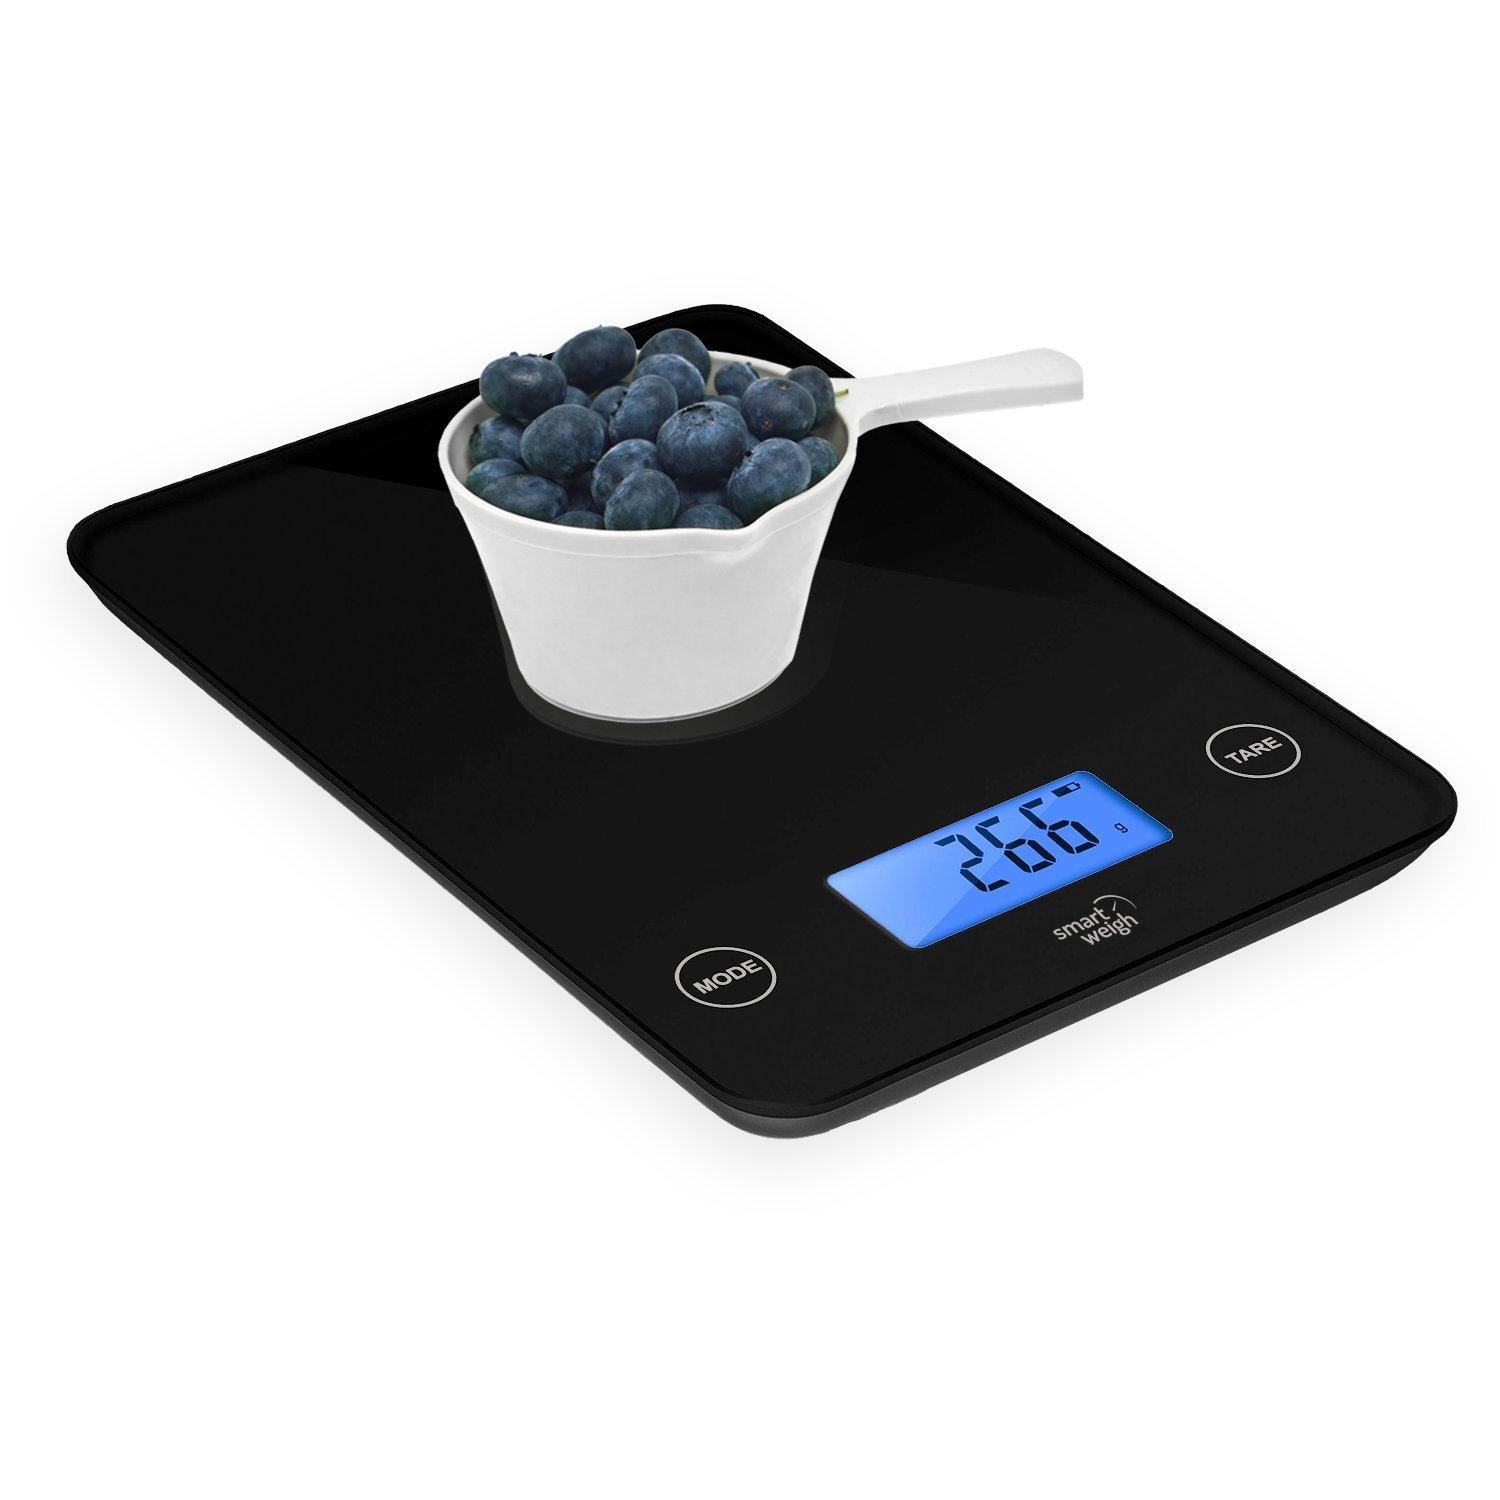 Smart Weigh Digital Food & Kitchen Scale, Sleek Glass Platform